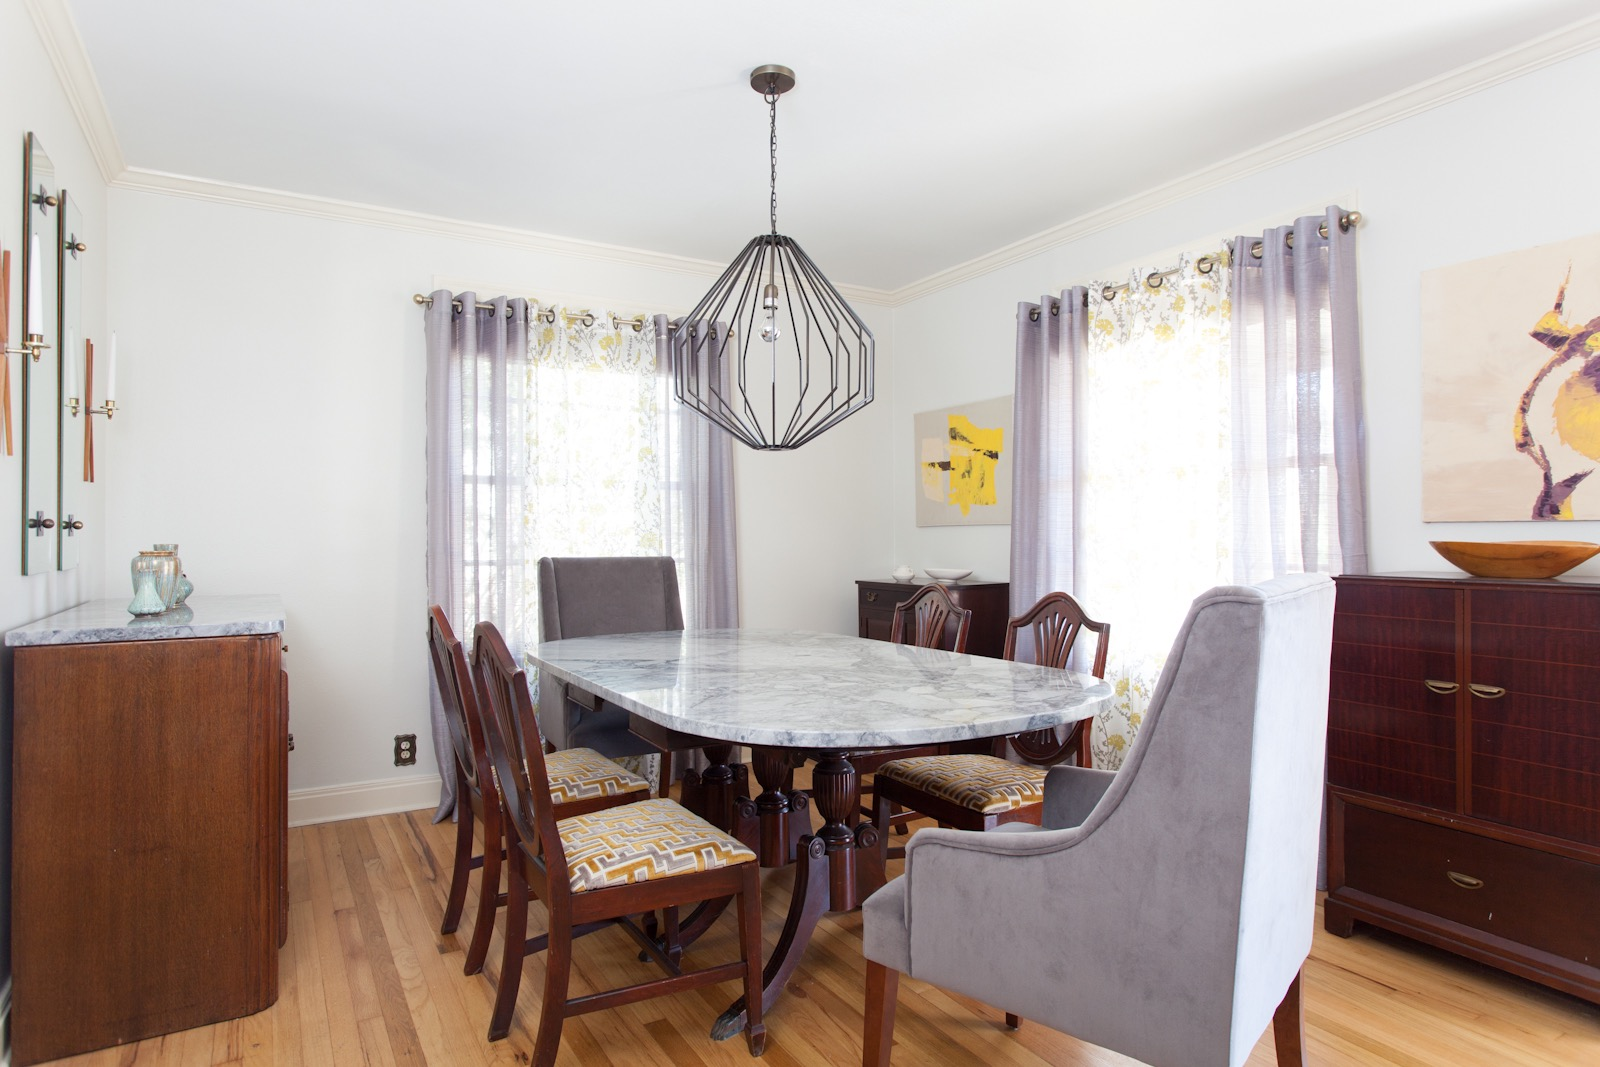 Mix Of Old Classic And New In Midcentury Modern Dining Room (Image 13 of 30)